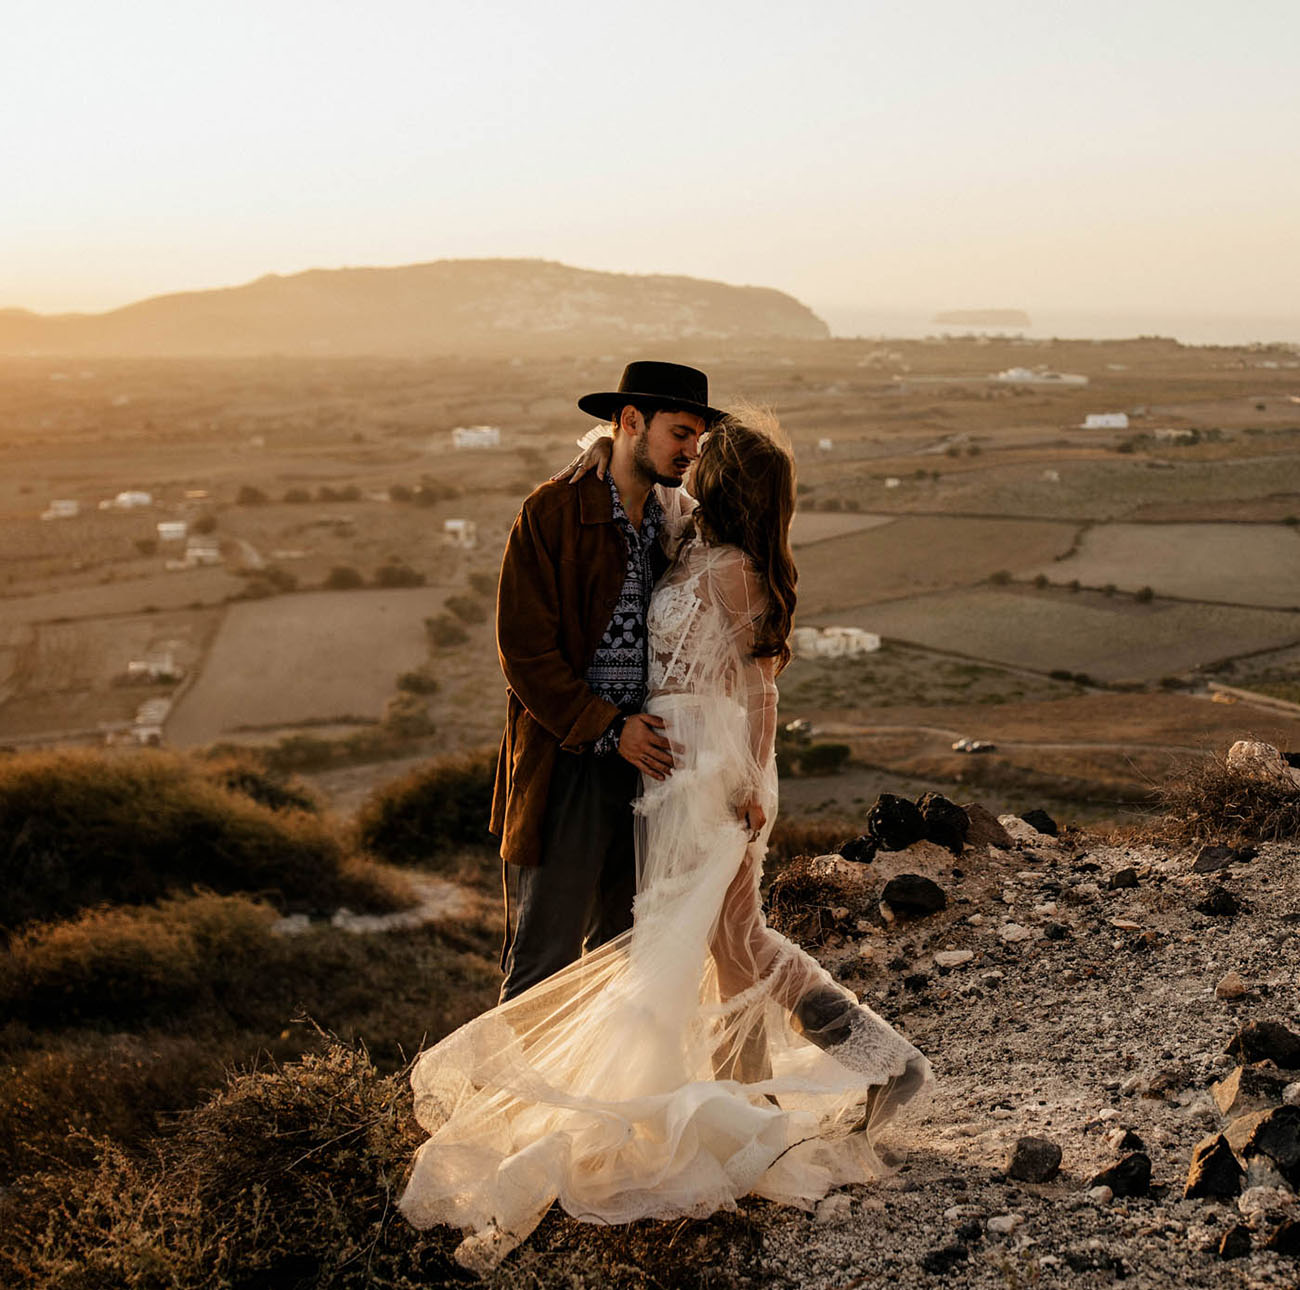 This fashion forward wedding shoot is inspired by rock'n'roll and all things boho and wild